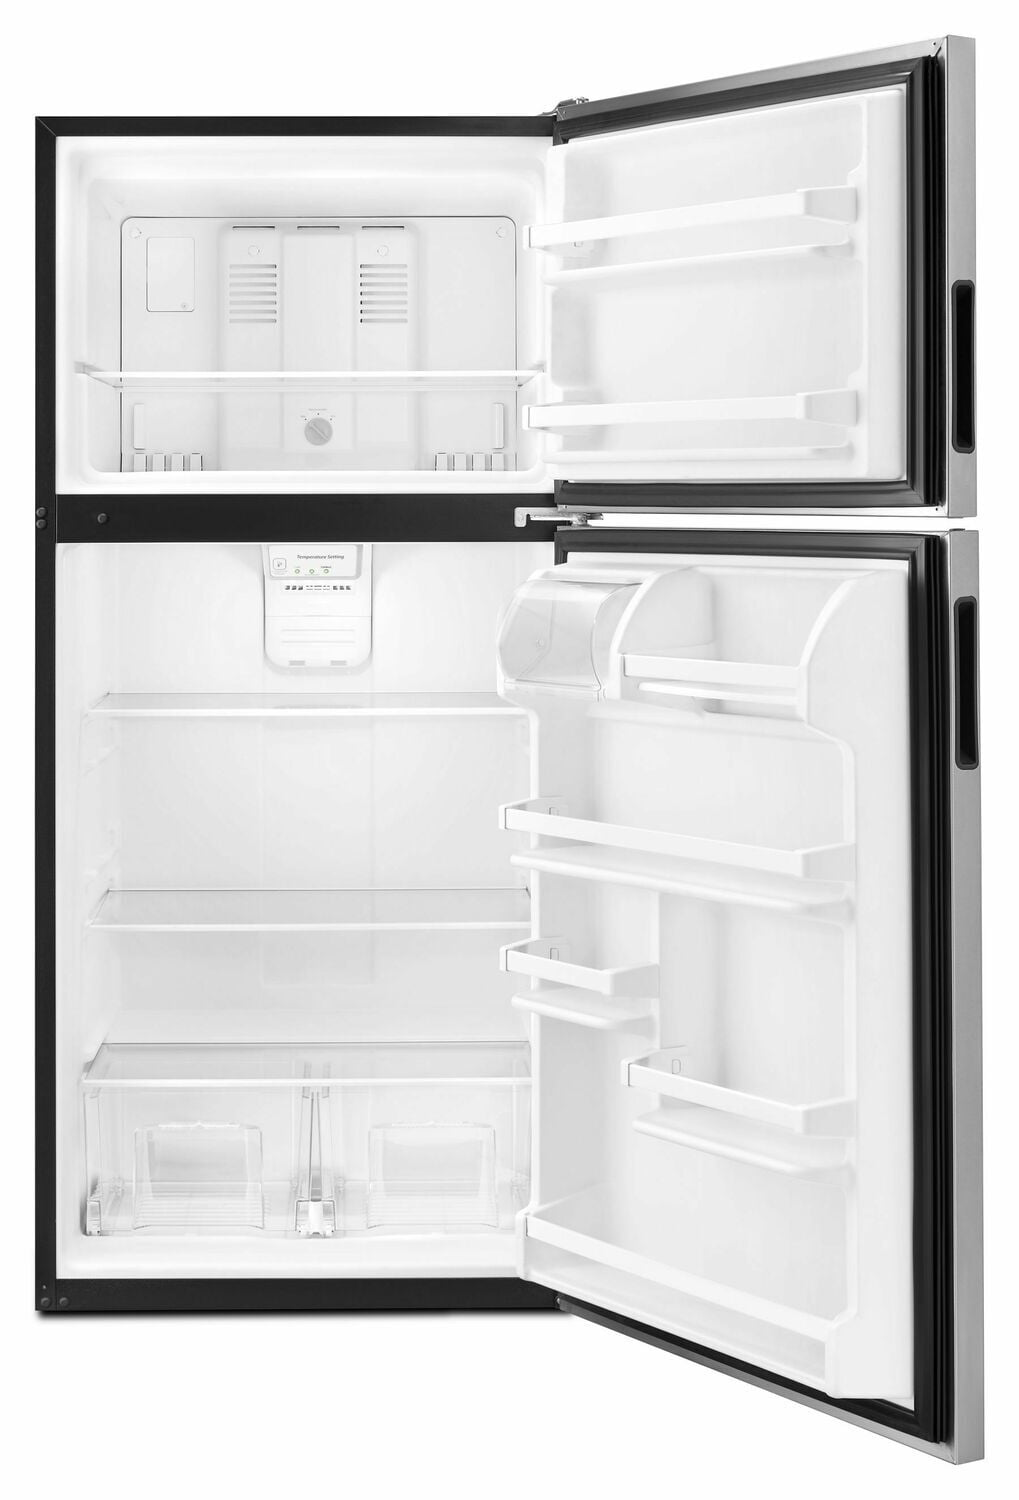 Load image into Gallery viewer, Amana ART318FFDS 30-Inch Amana® Top-Freezer Refrigerator With Glass Shelves - Stainless Steel